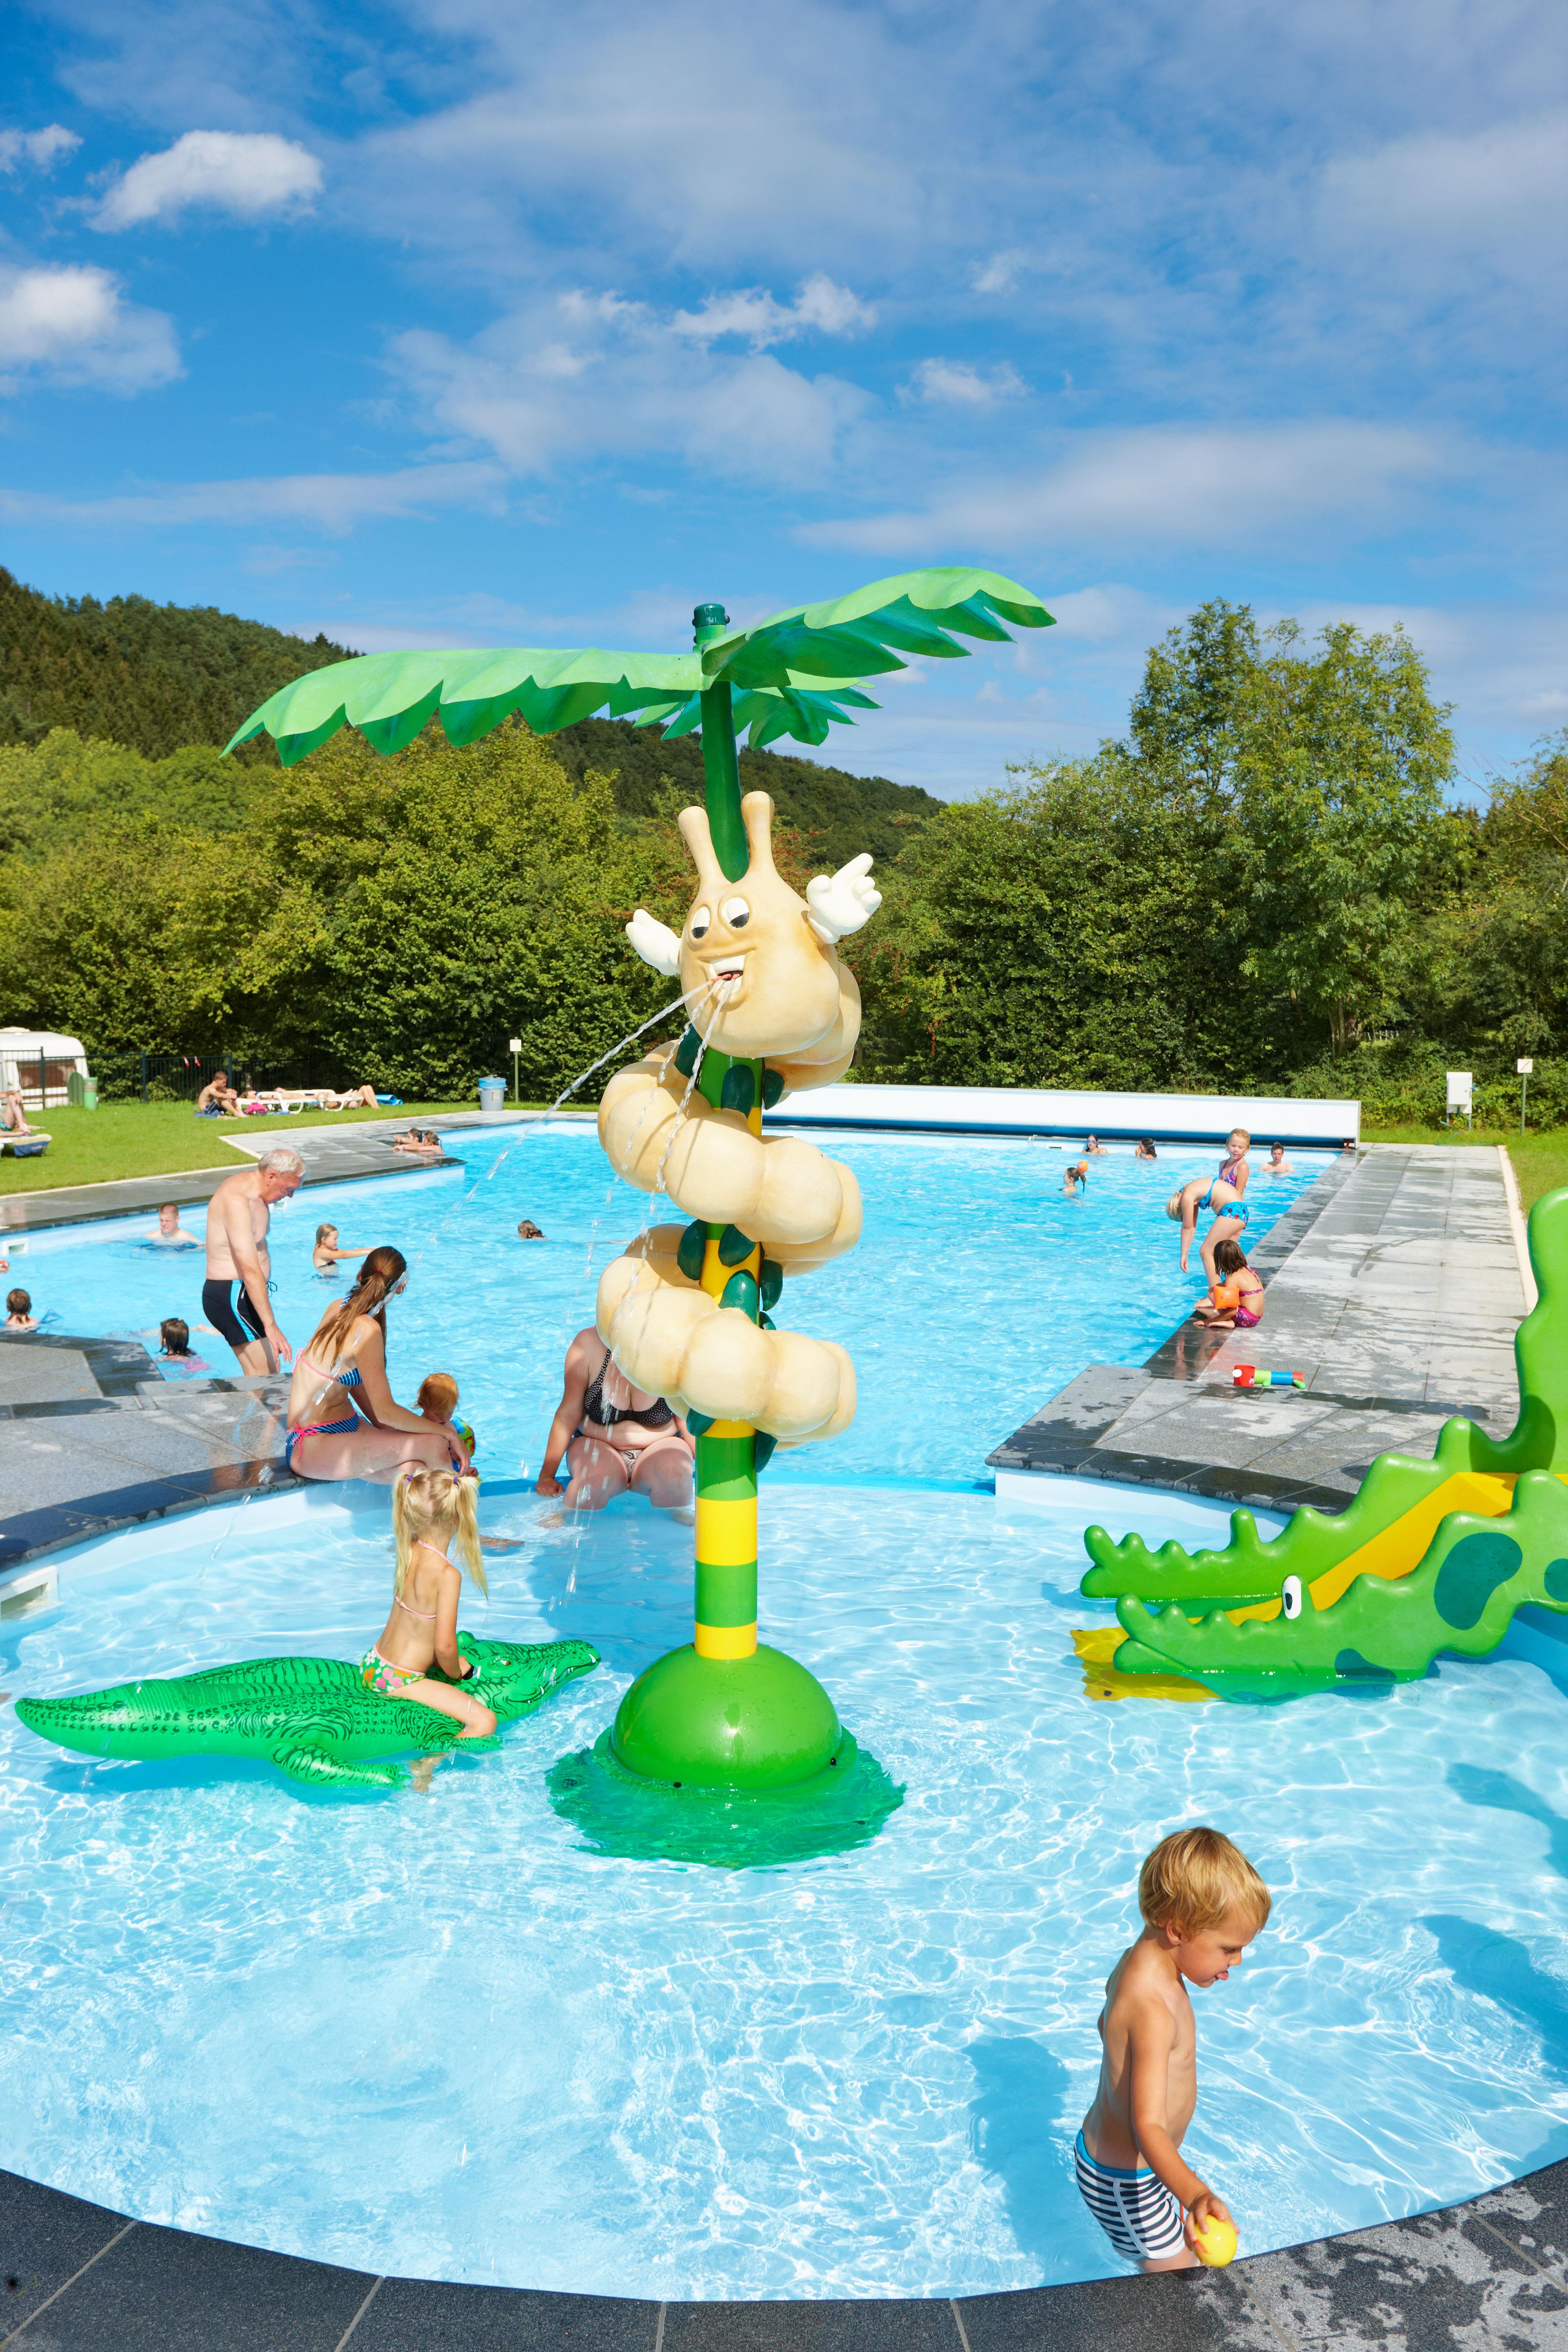 Mare, piscina Camping Spa d'Or - Sart-lez-Spa